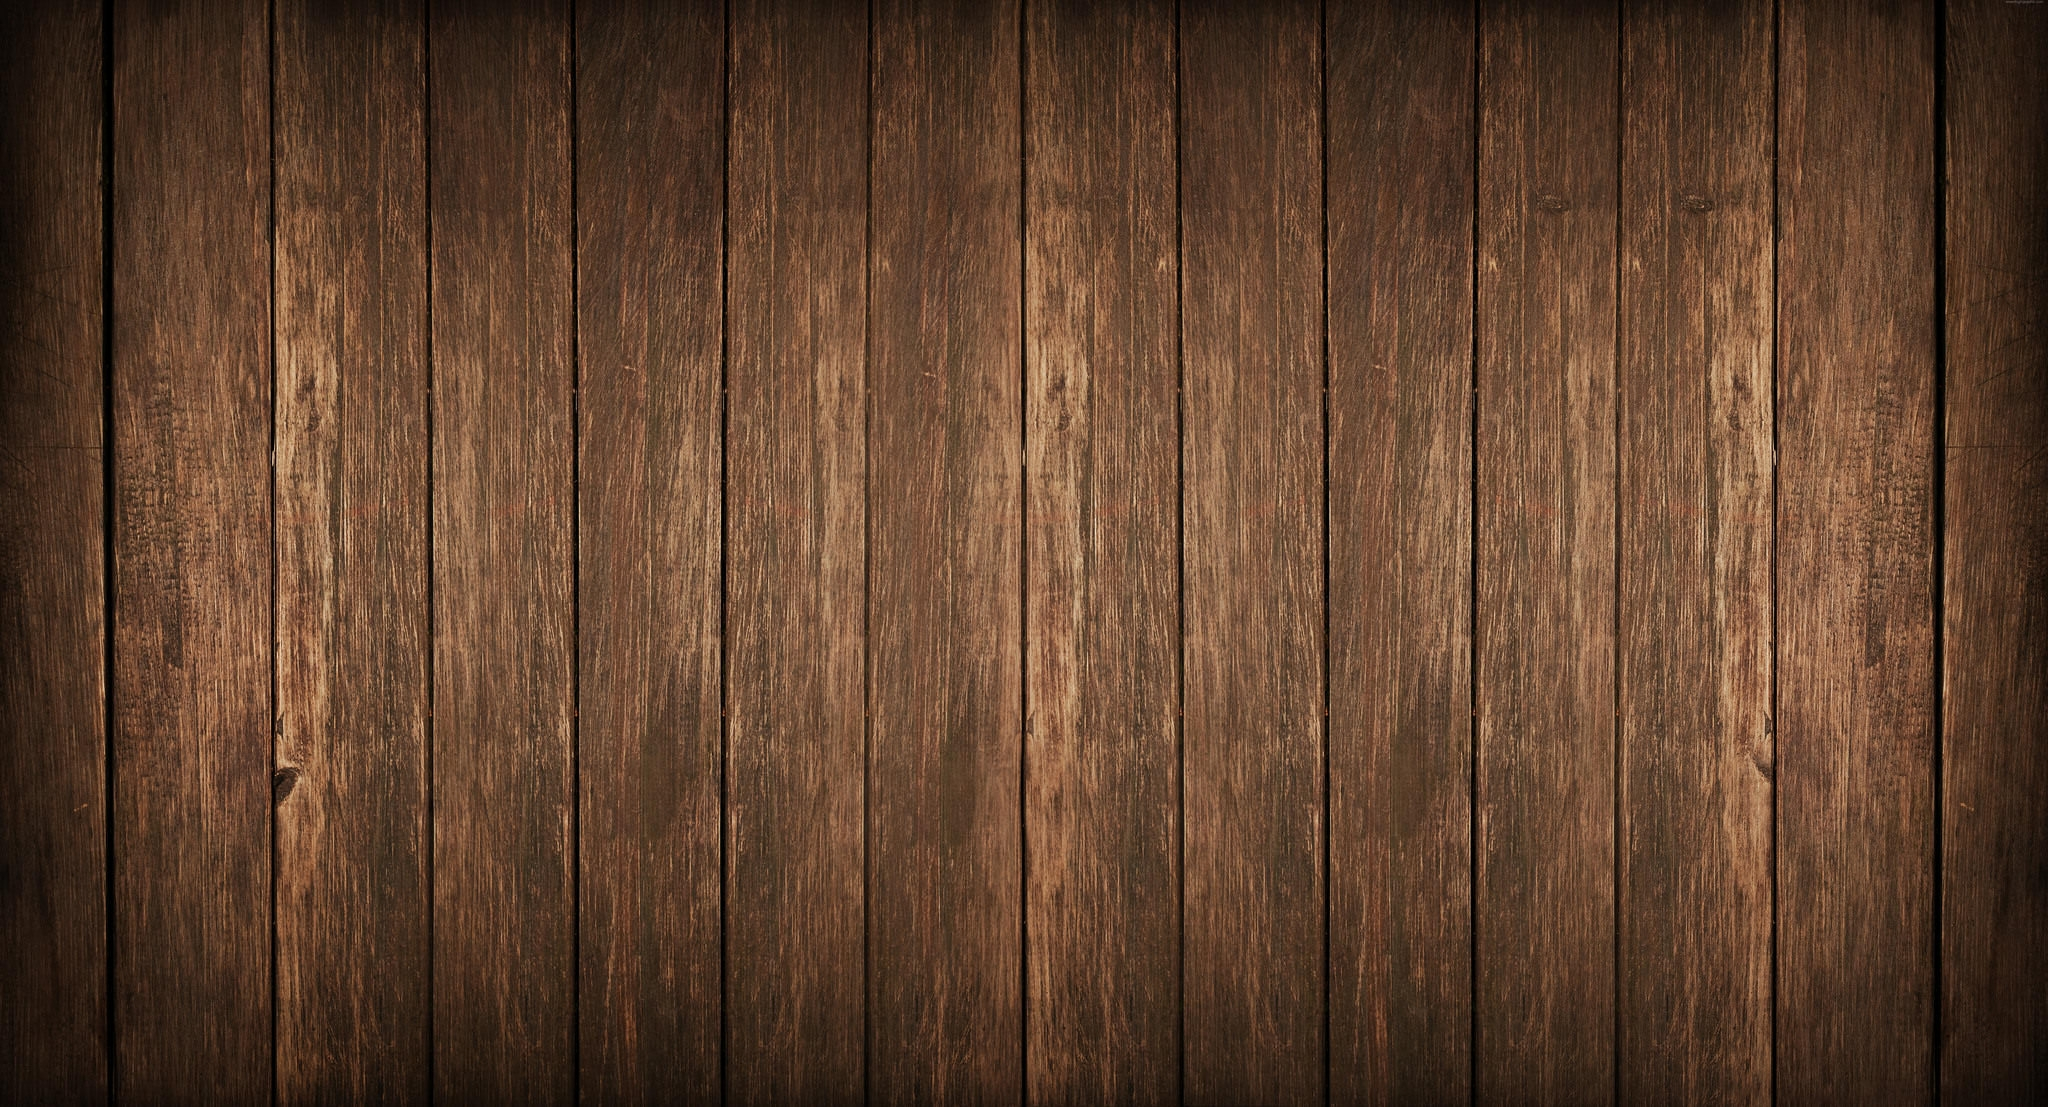 20 Old Wood Backgrounds Psd Vector Eps Jpg Download